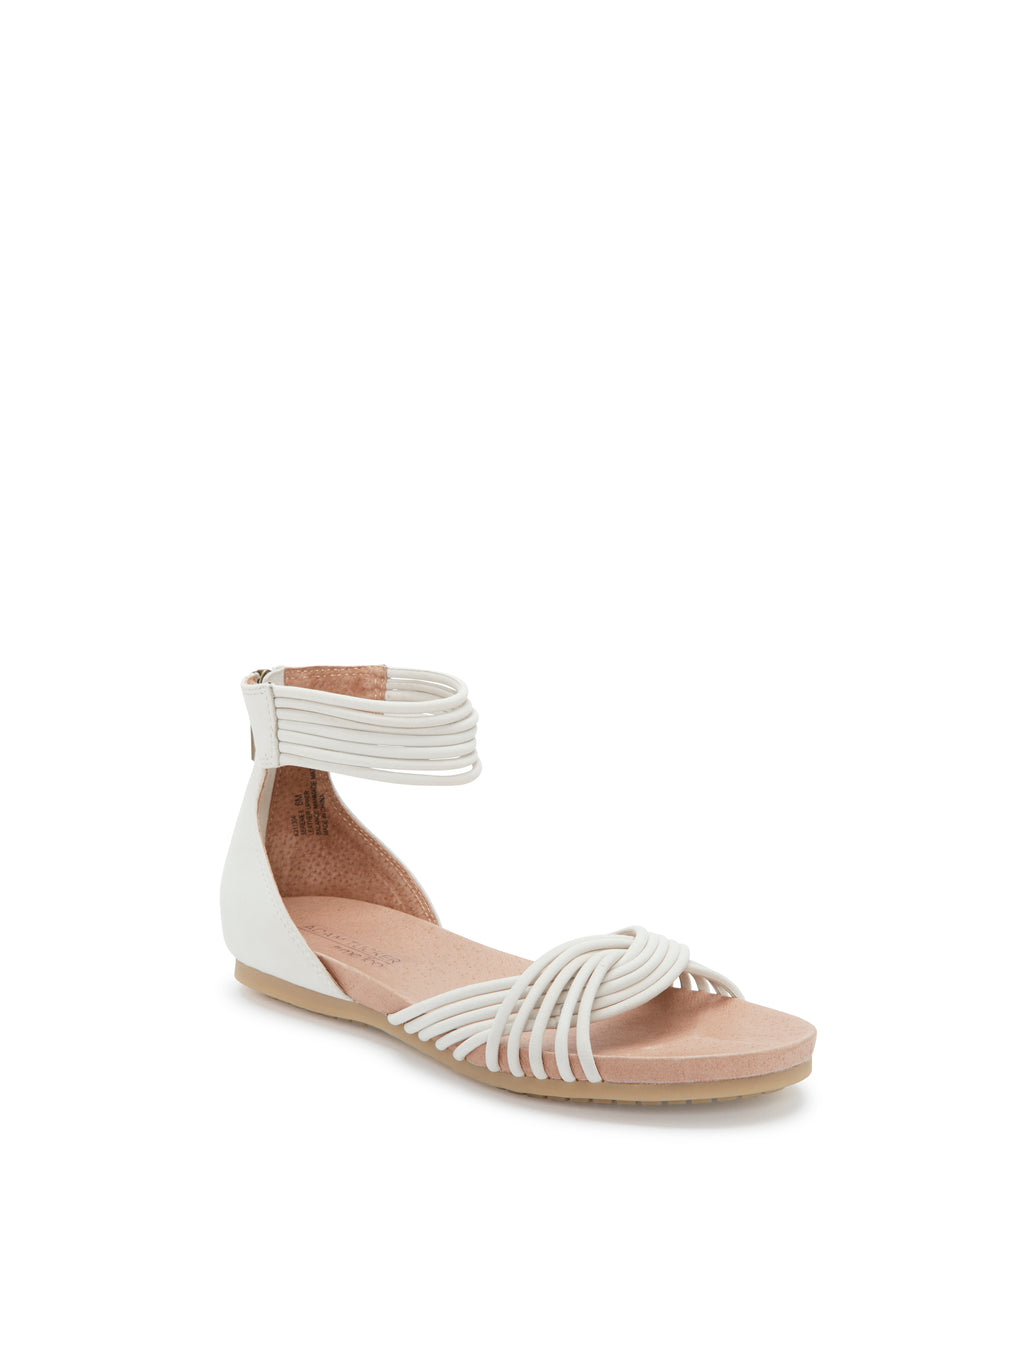 serene+white+leather+sandal+adamtucker